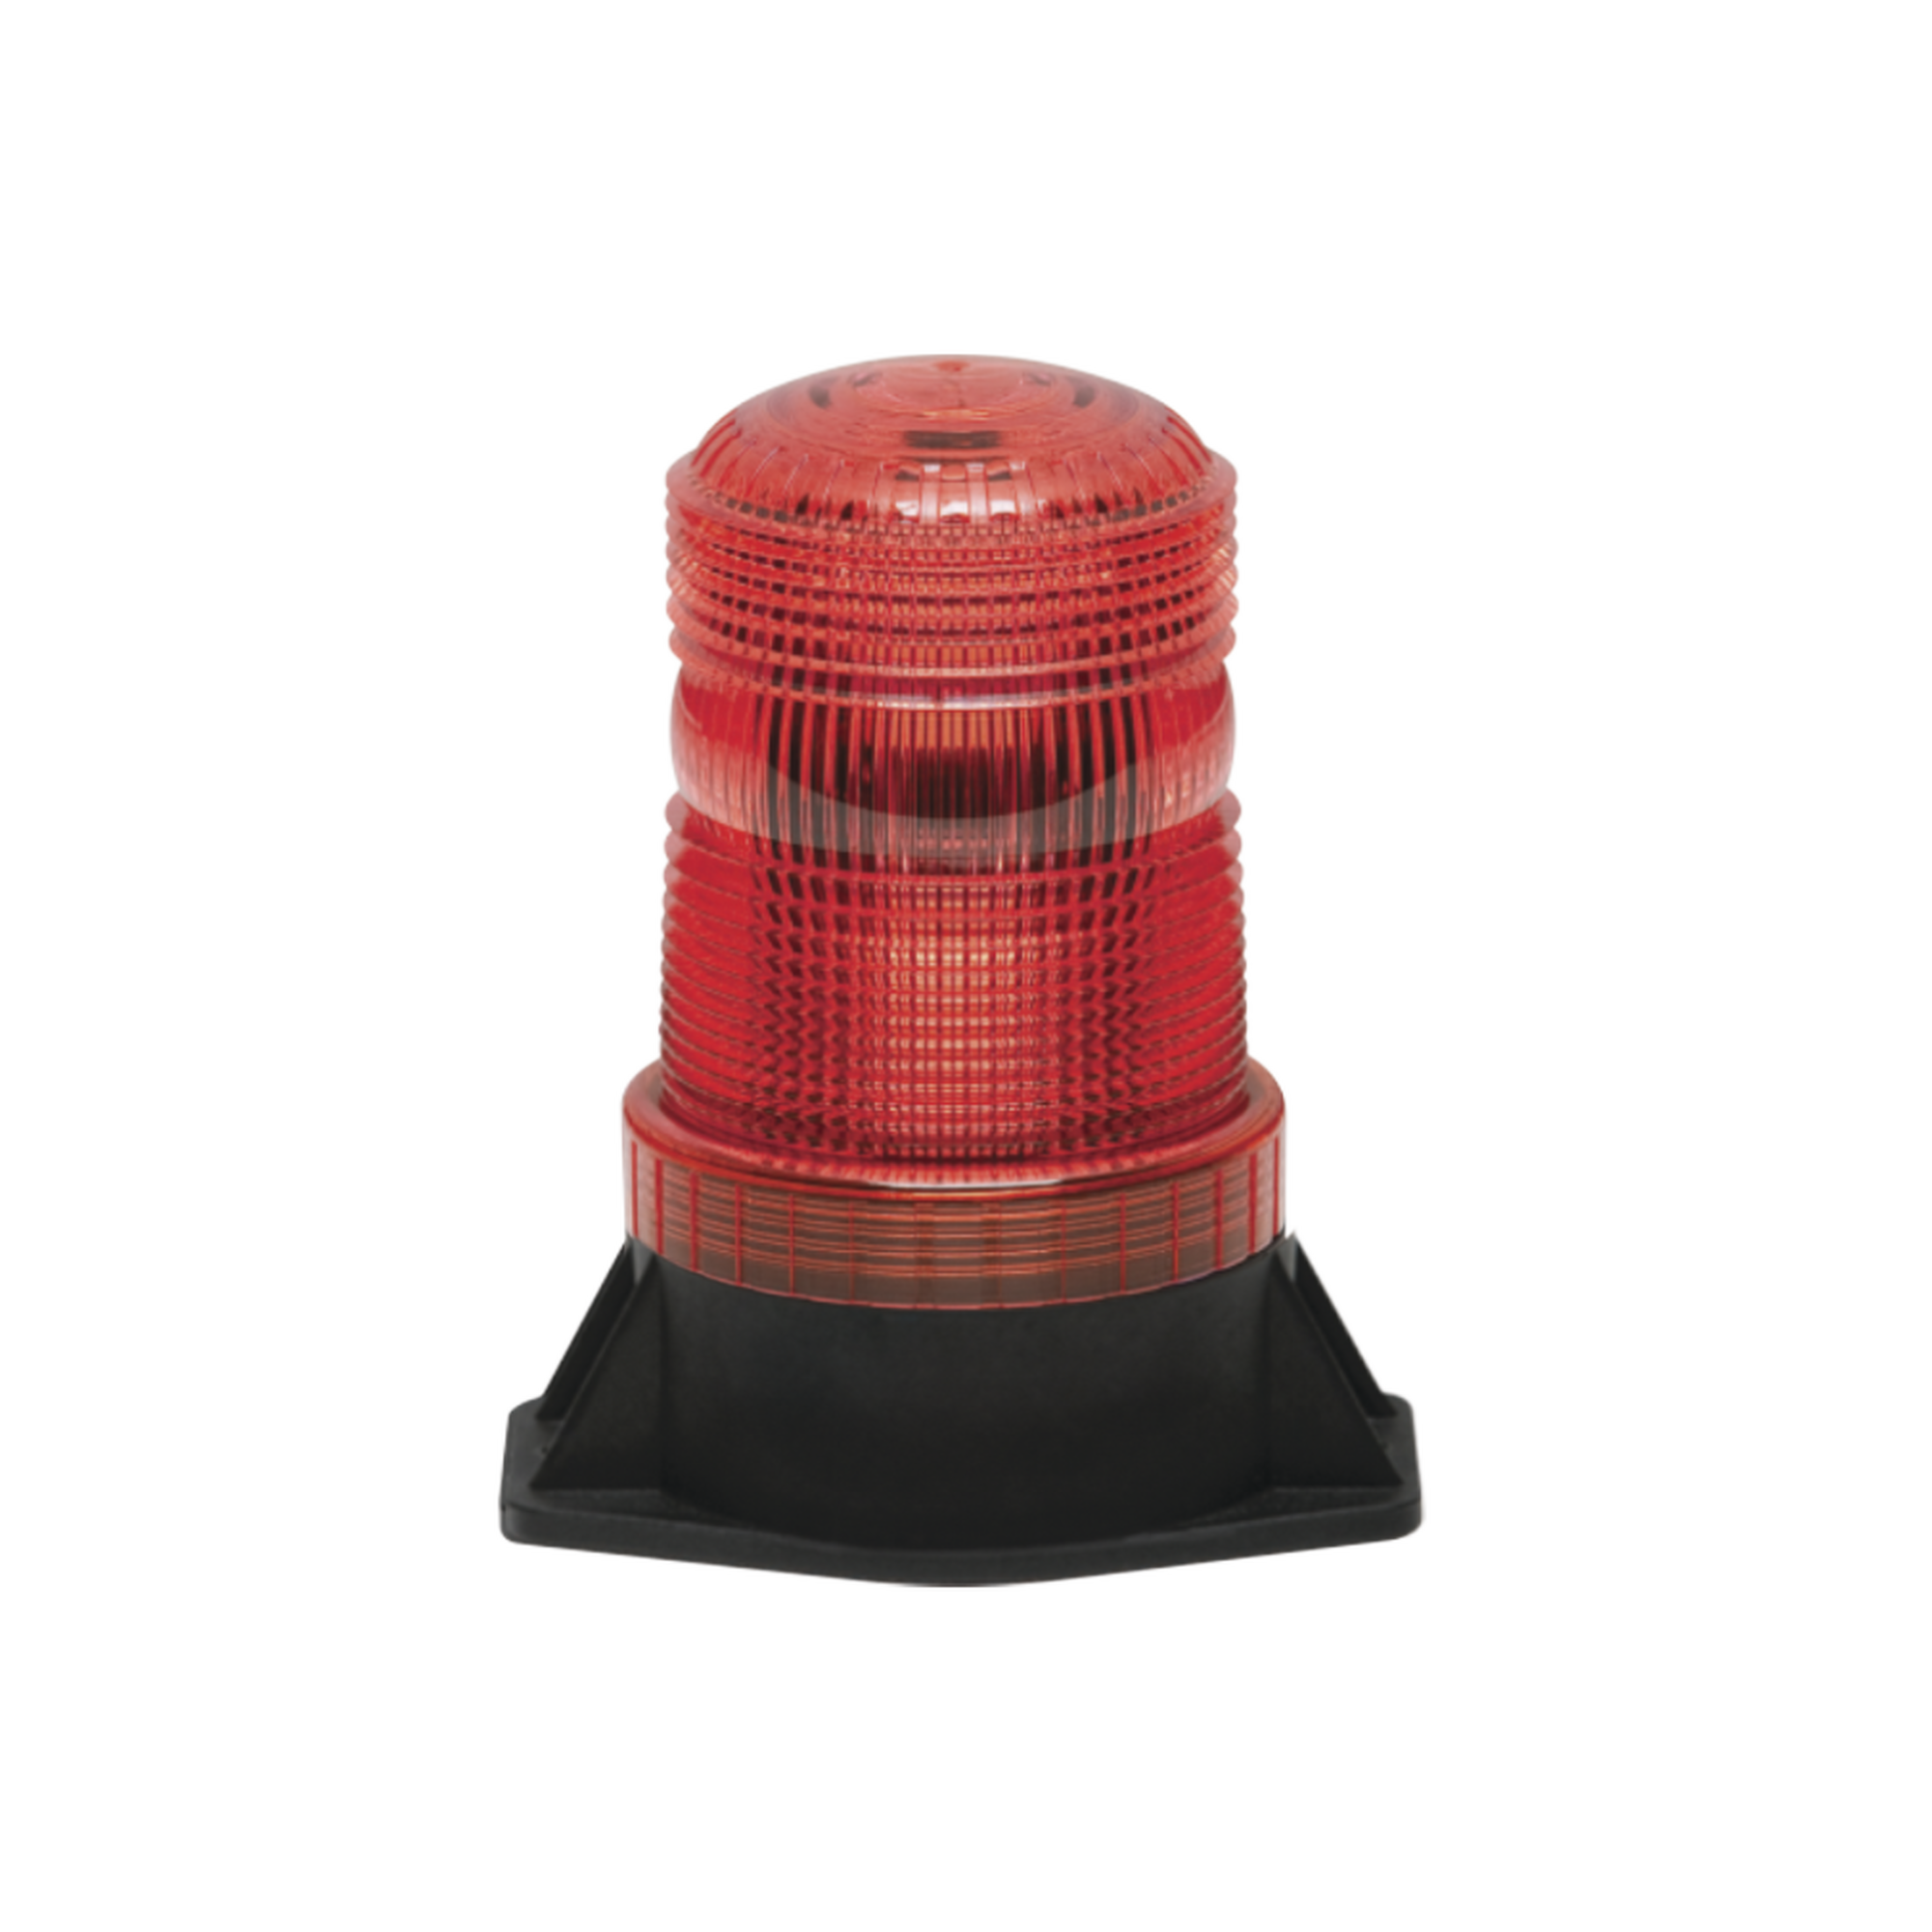 Mini Burbuja de LED Serie X6262, Color Rojo